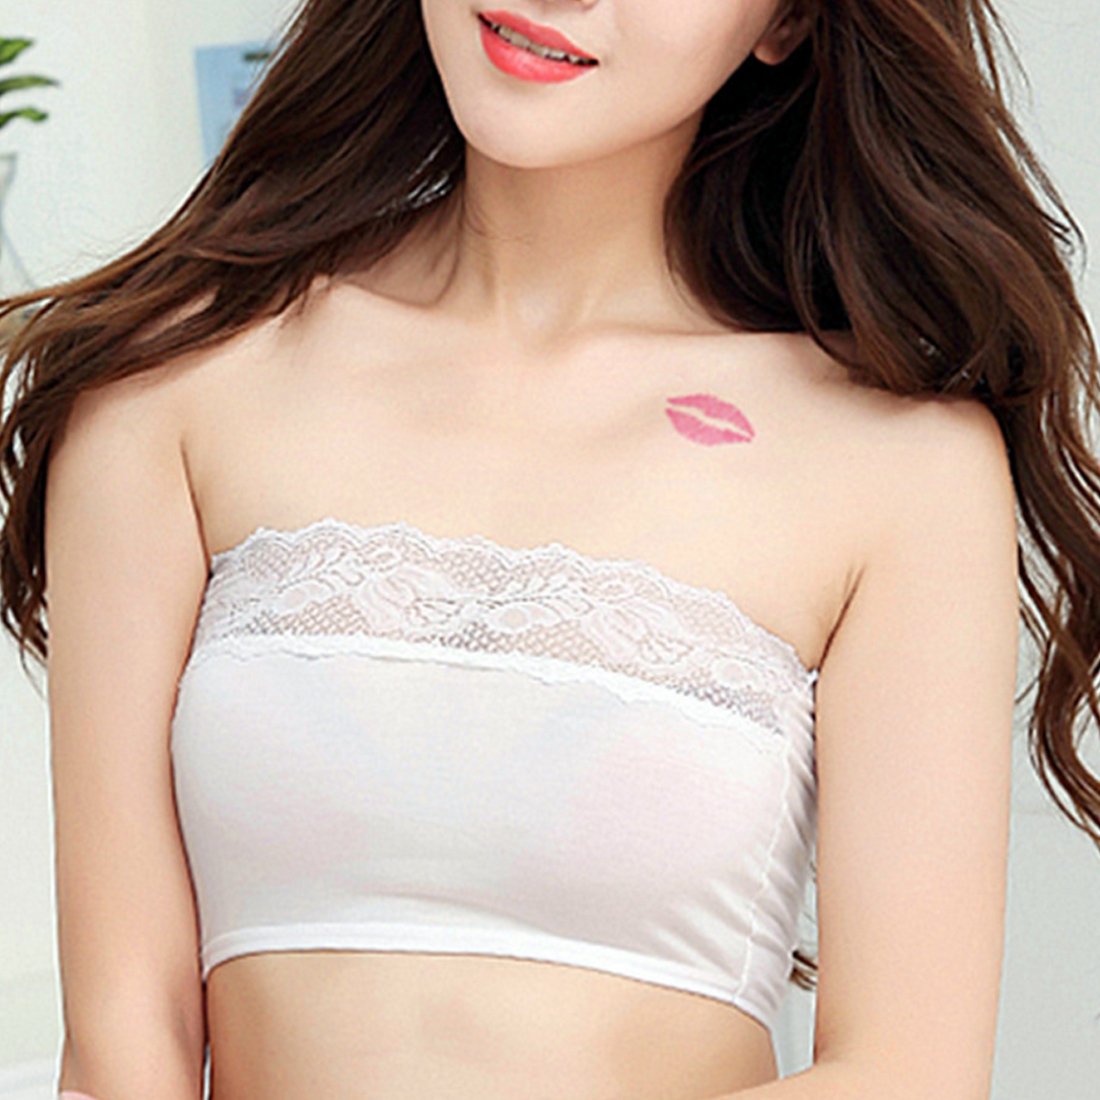 0f8599022957a Strapless Seamless Beauty Back Sexy Lace Embroidery Boob Tube Top Flower  Cotton Bandeau Bra Anti Reveal Women Tube Tops